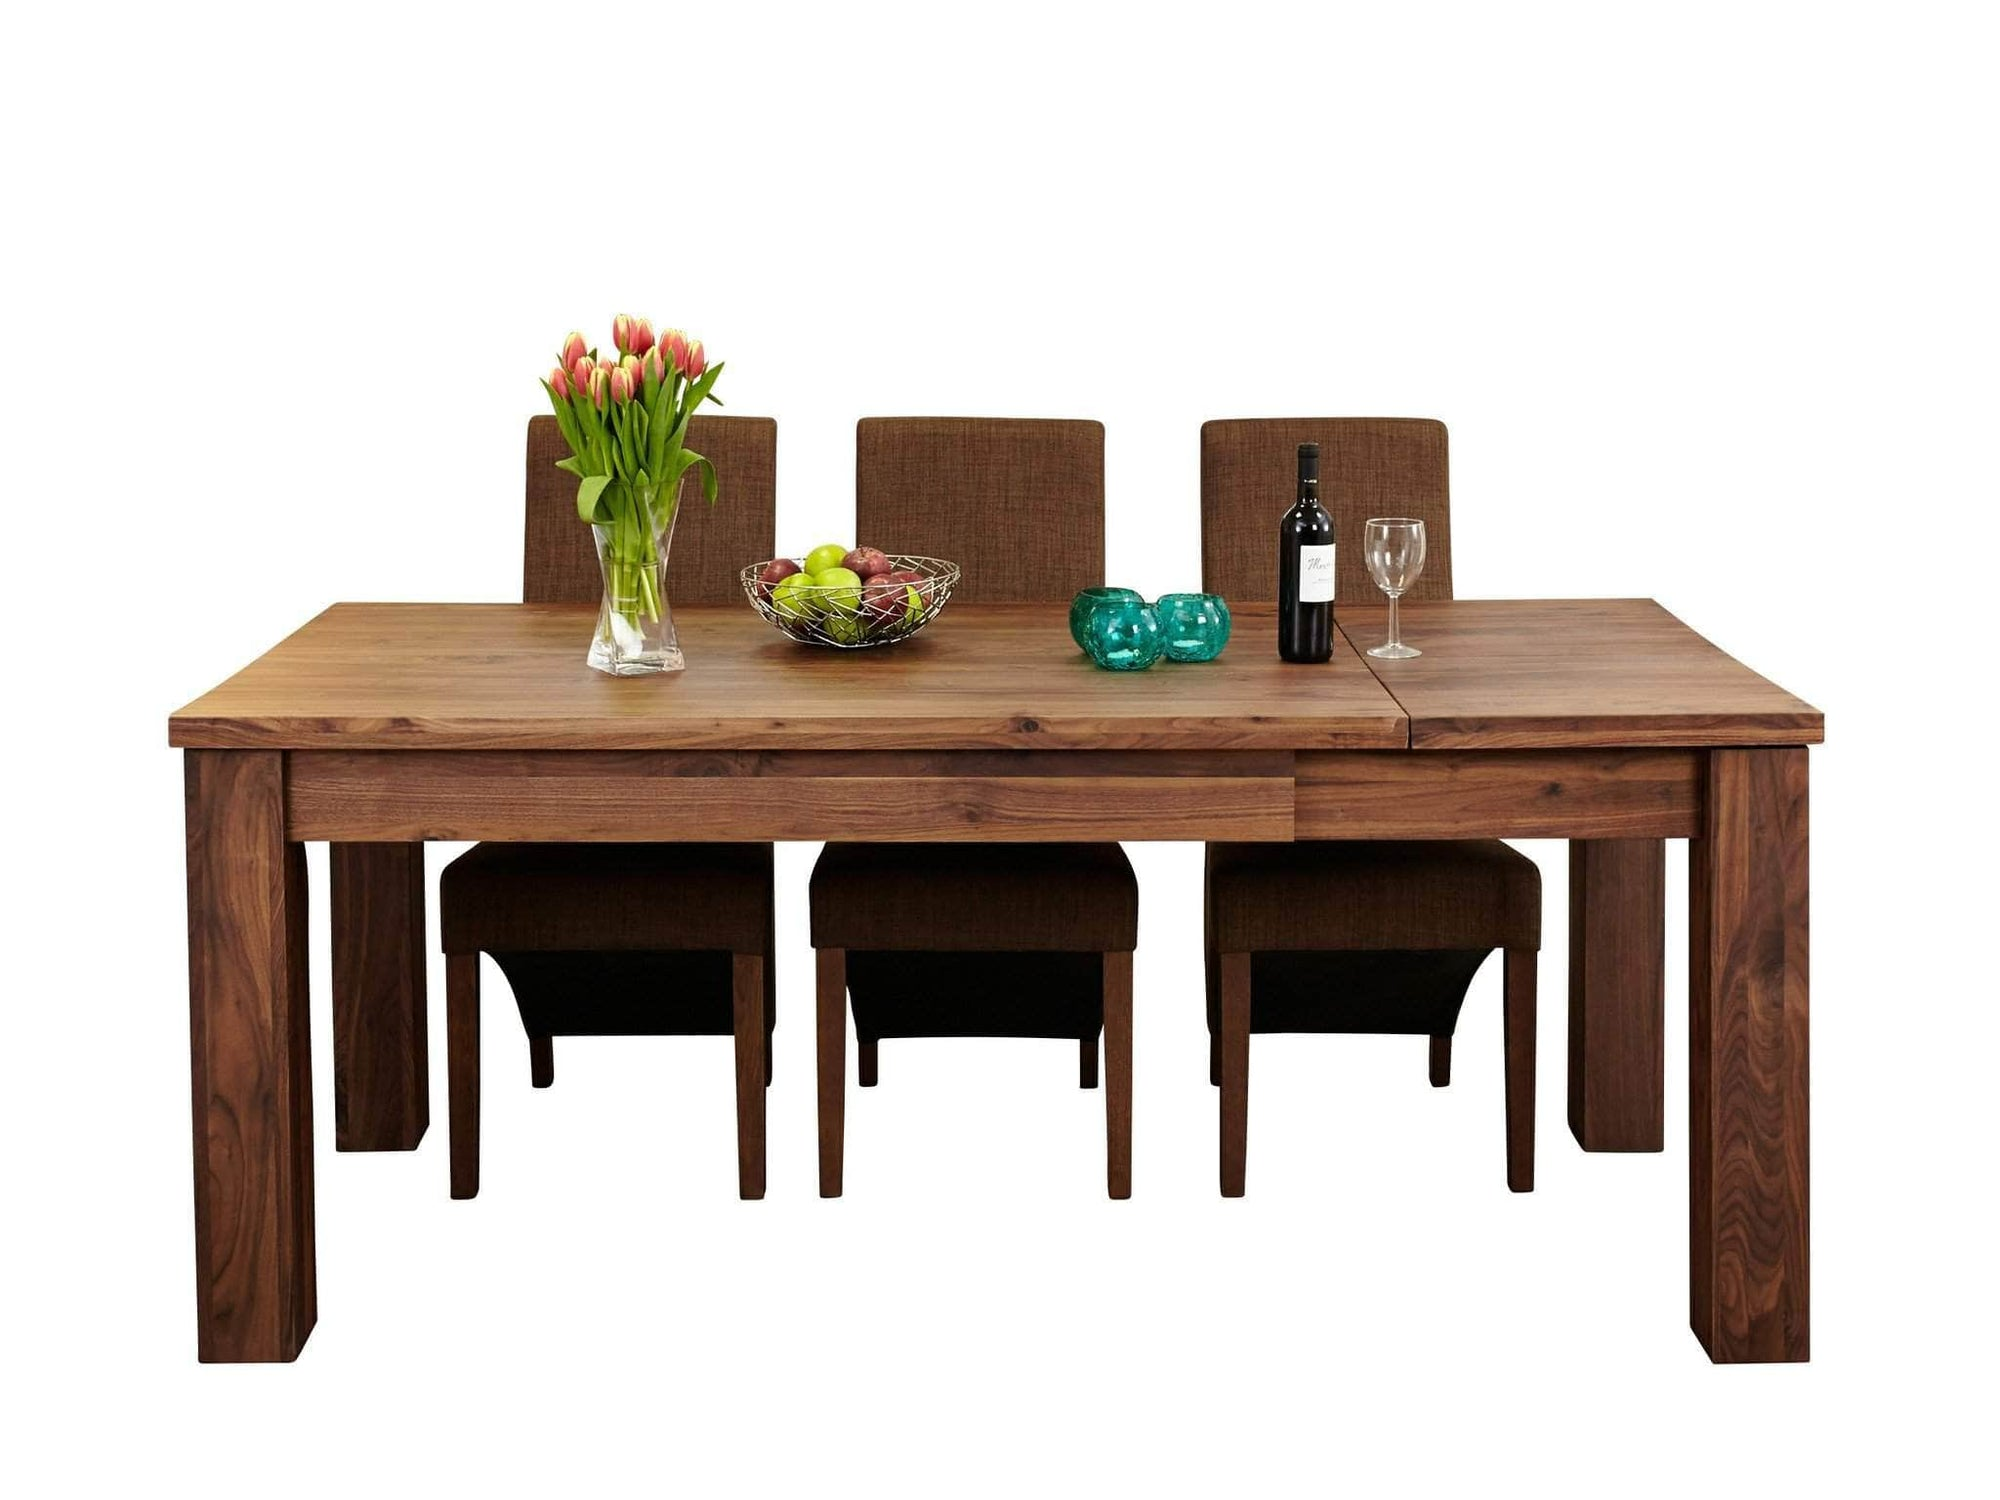 Solid walnut extending dining table for up to eight dinner guests